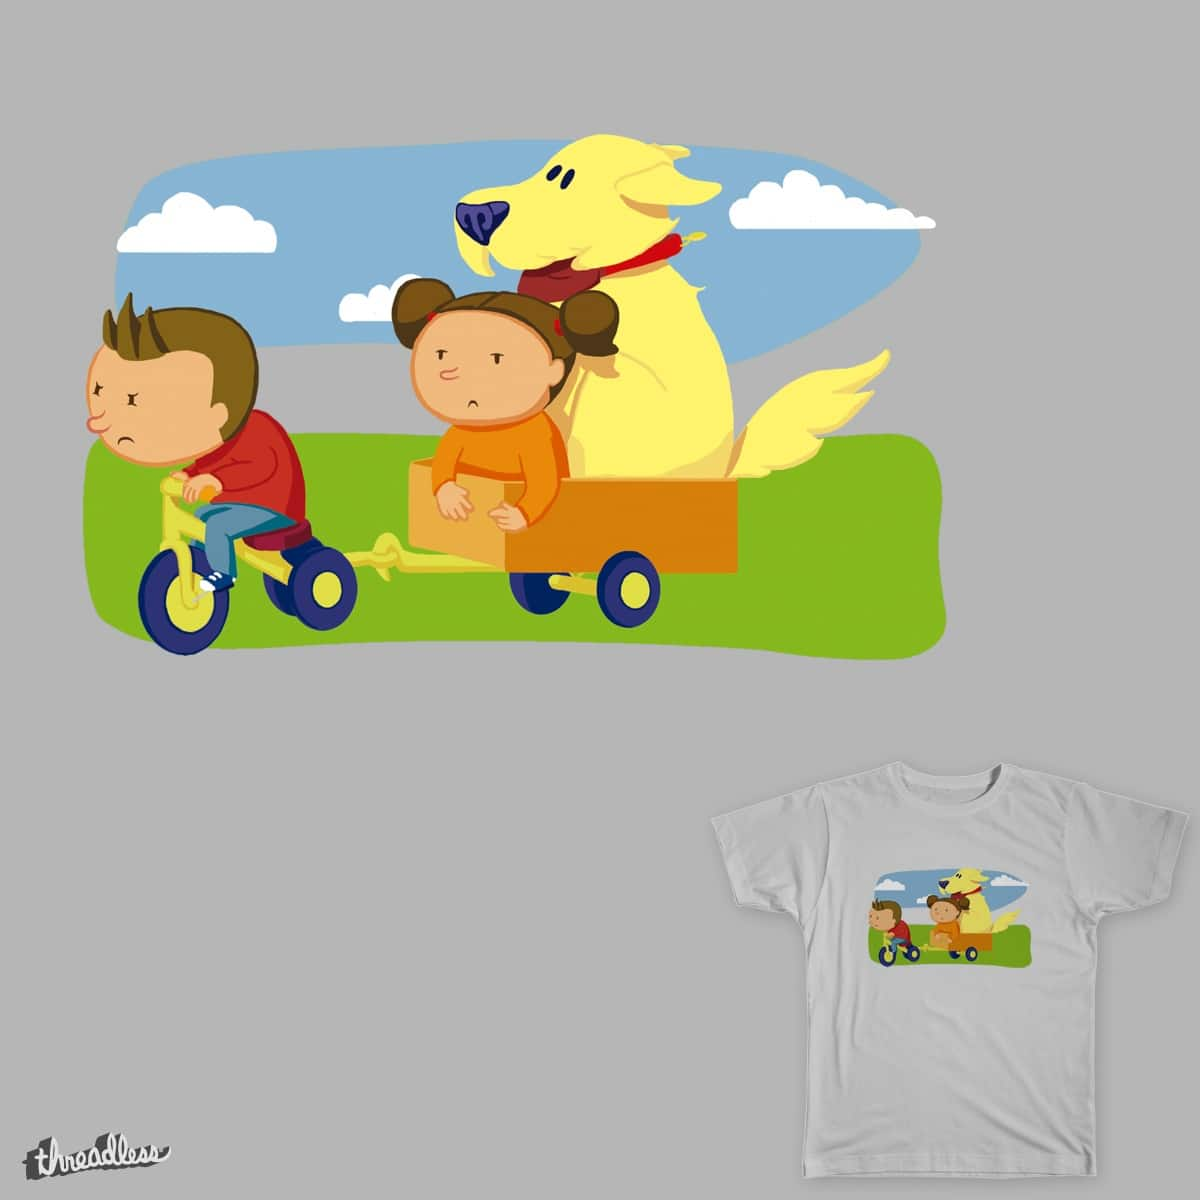 dog on wheels by RSurroca on Threadless